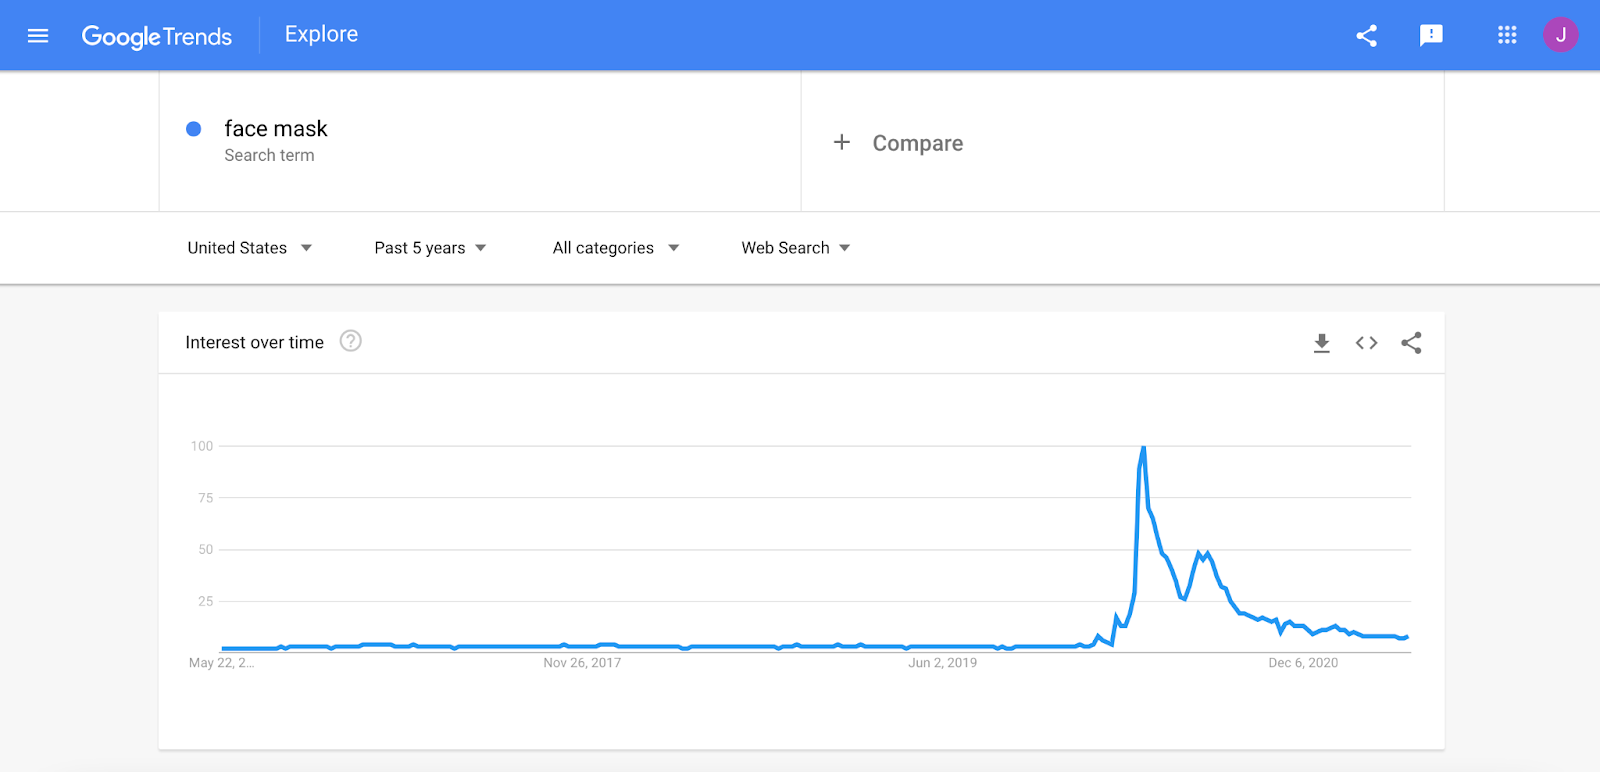 Google Search interest toward face masks from May 2004 to present